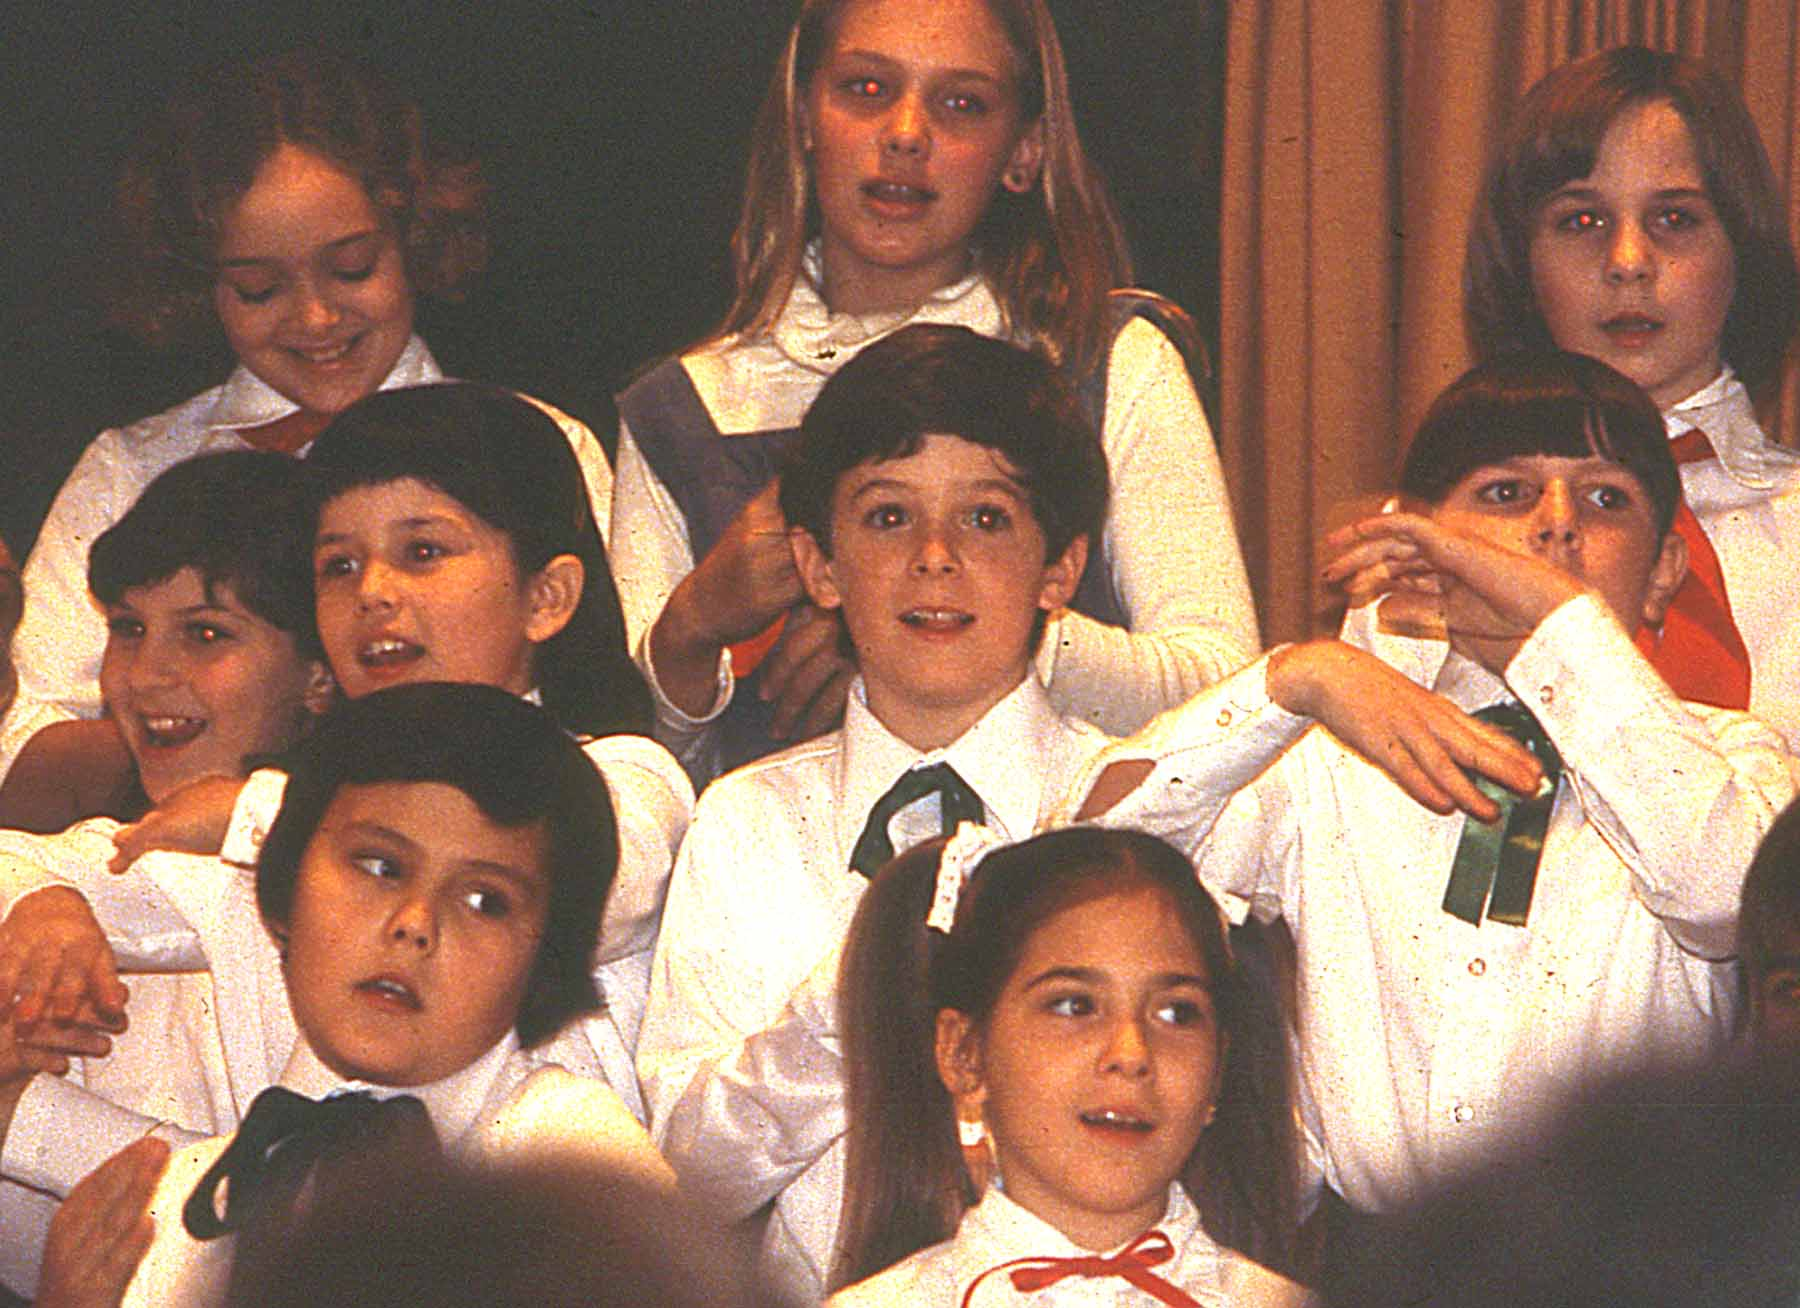 Patrick in the choir